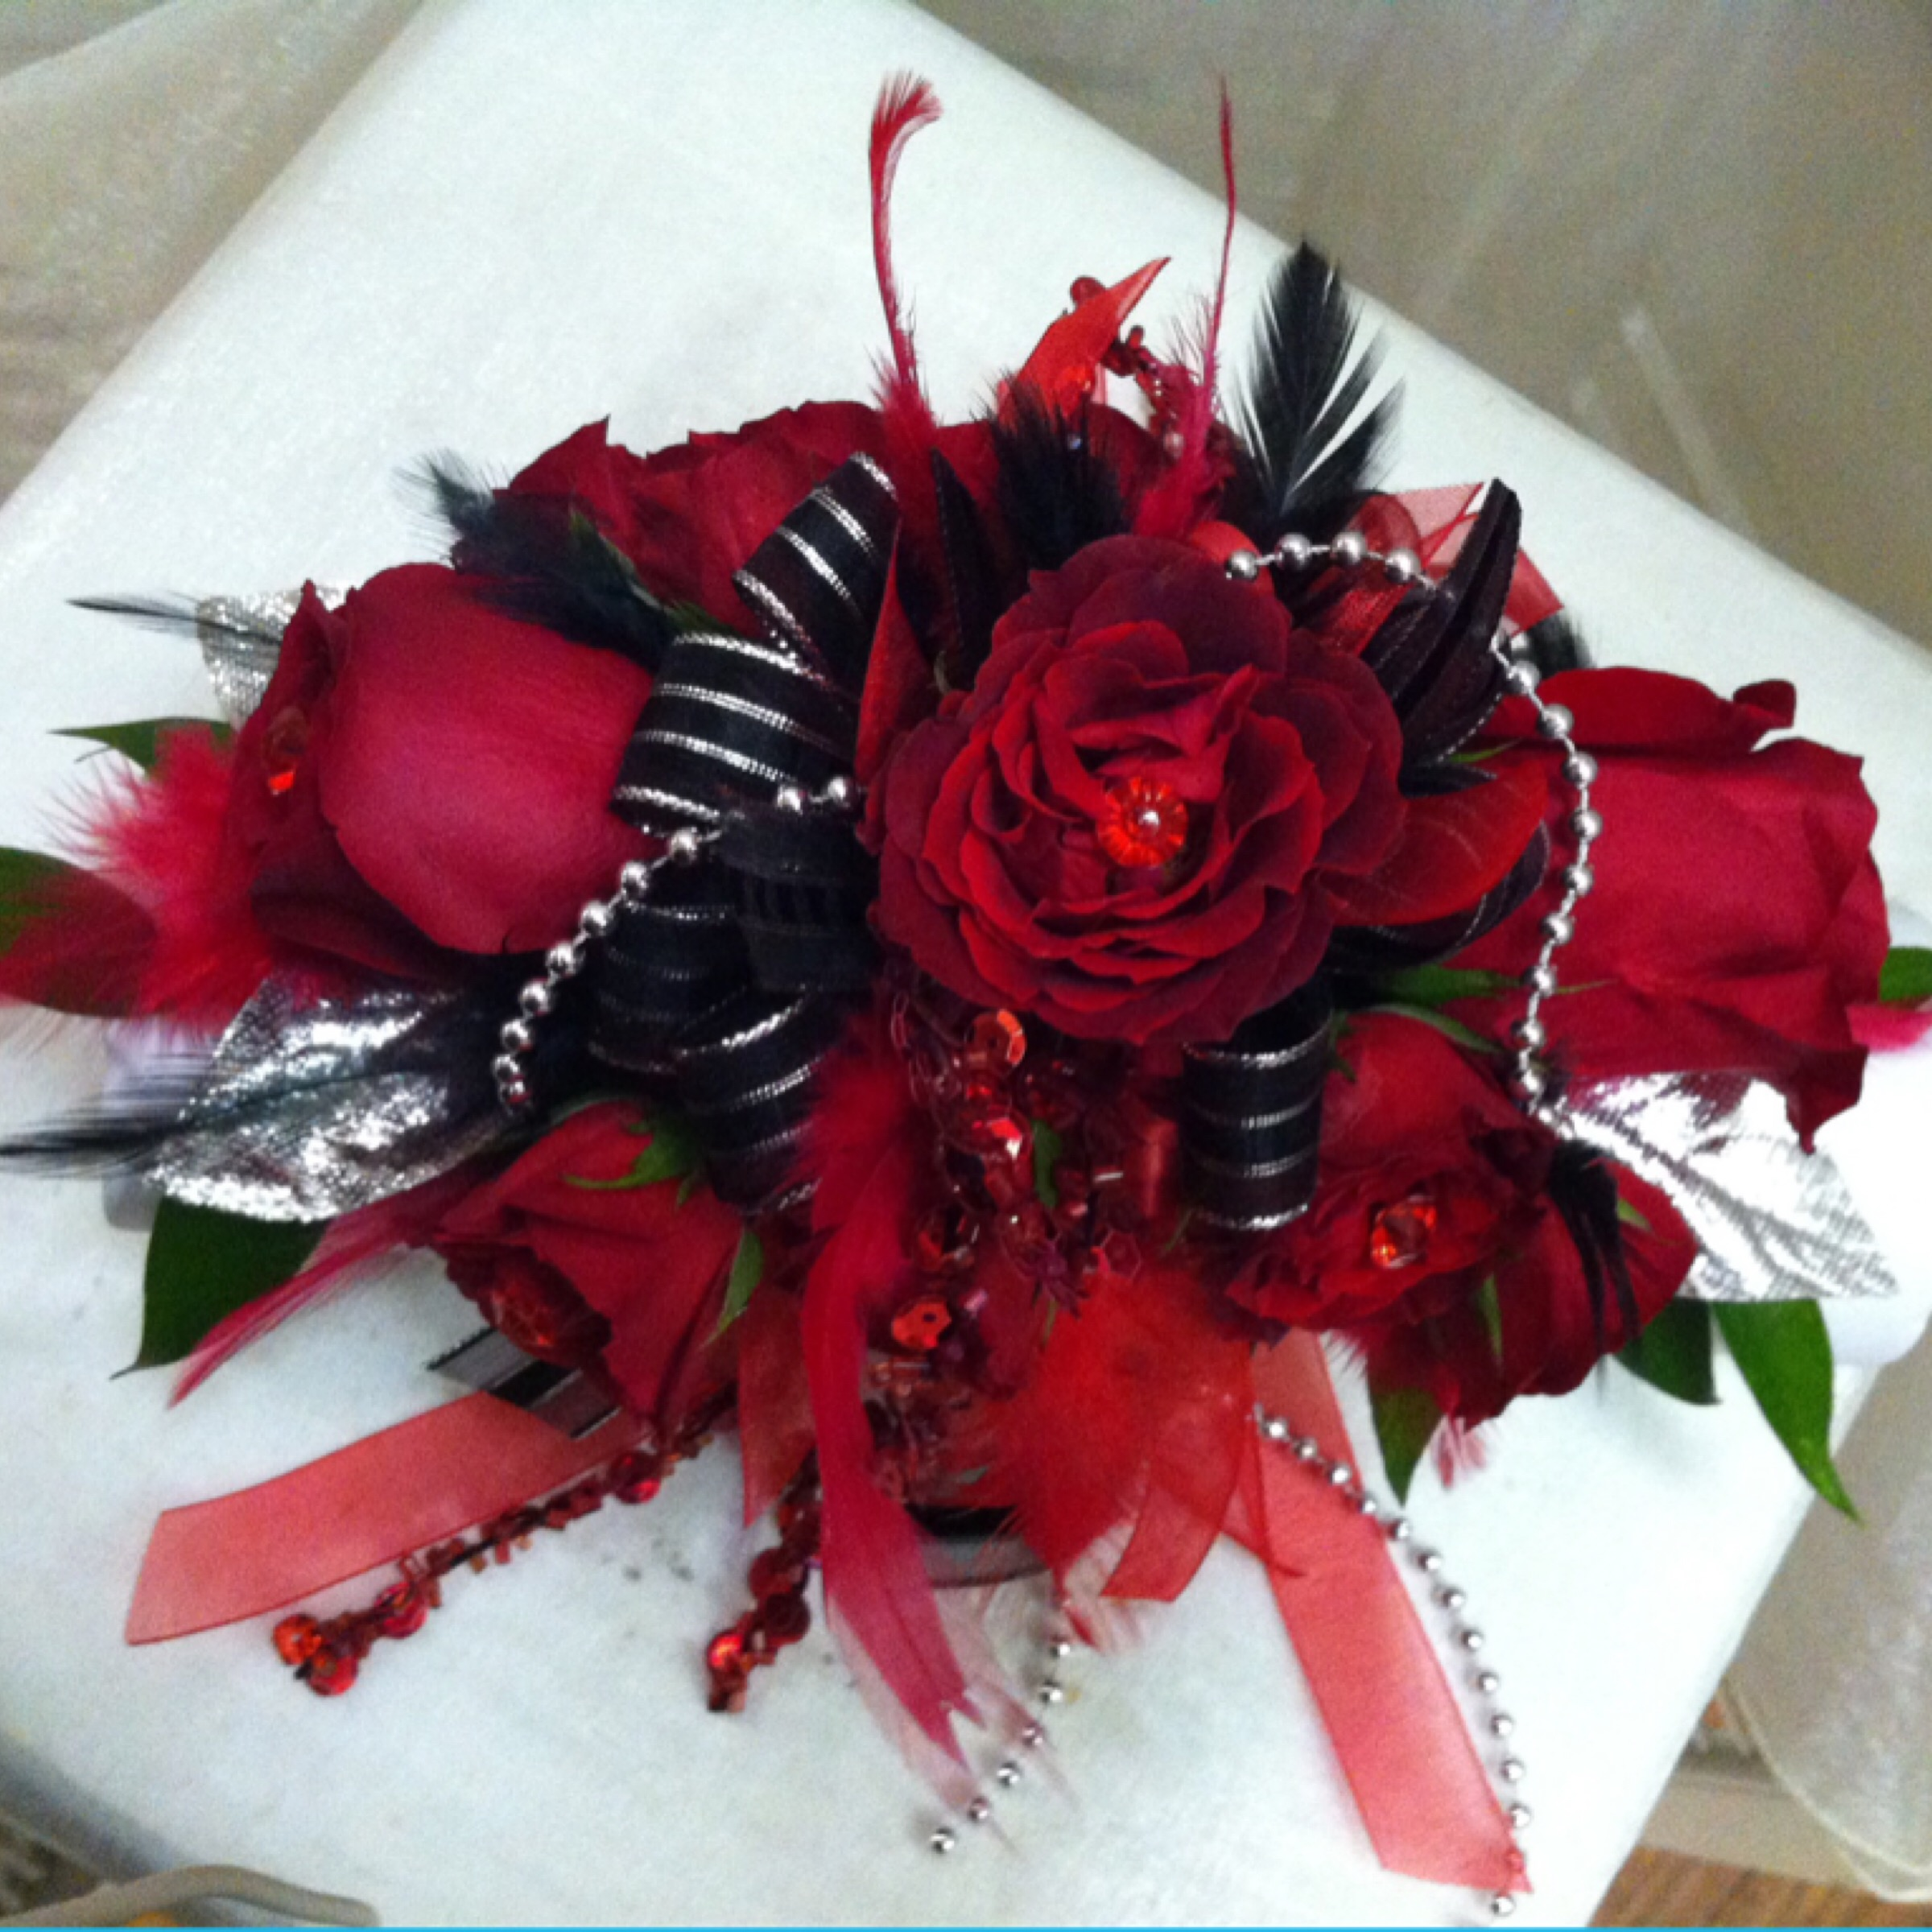 Deluxe Corsage (45) with Sparkly Leaves (2) and Extra Flowers (5) $52